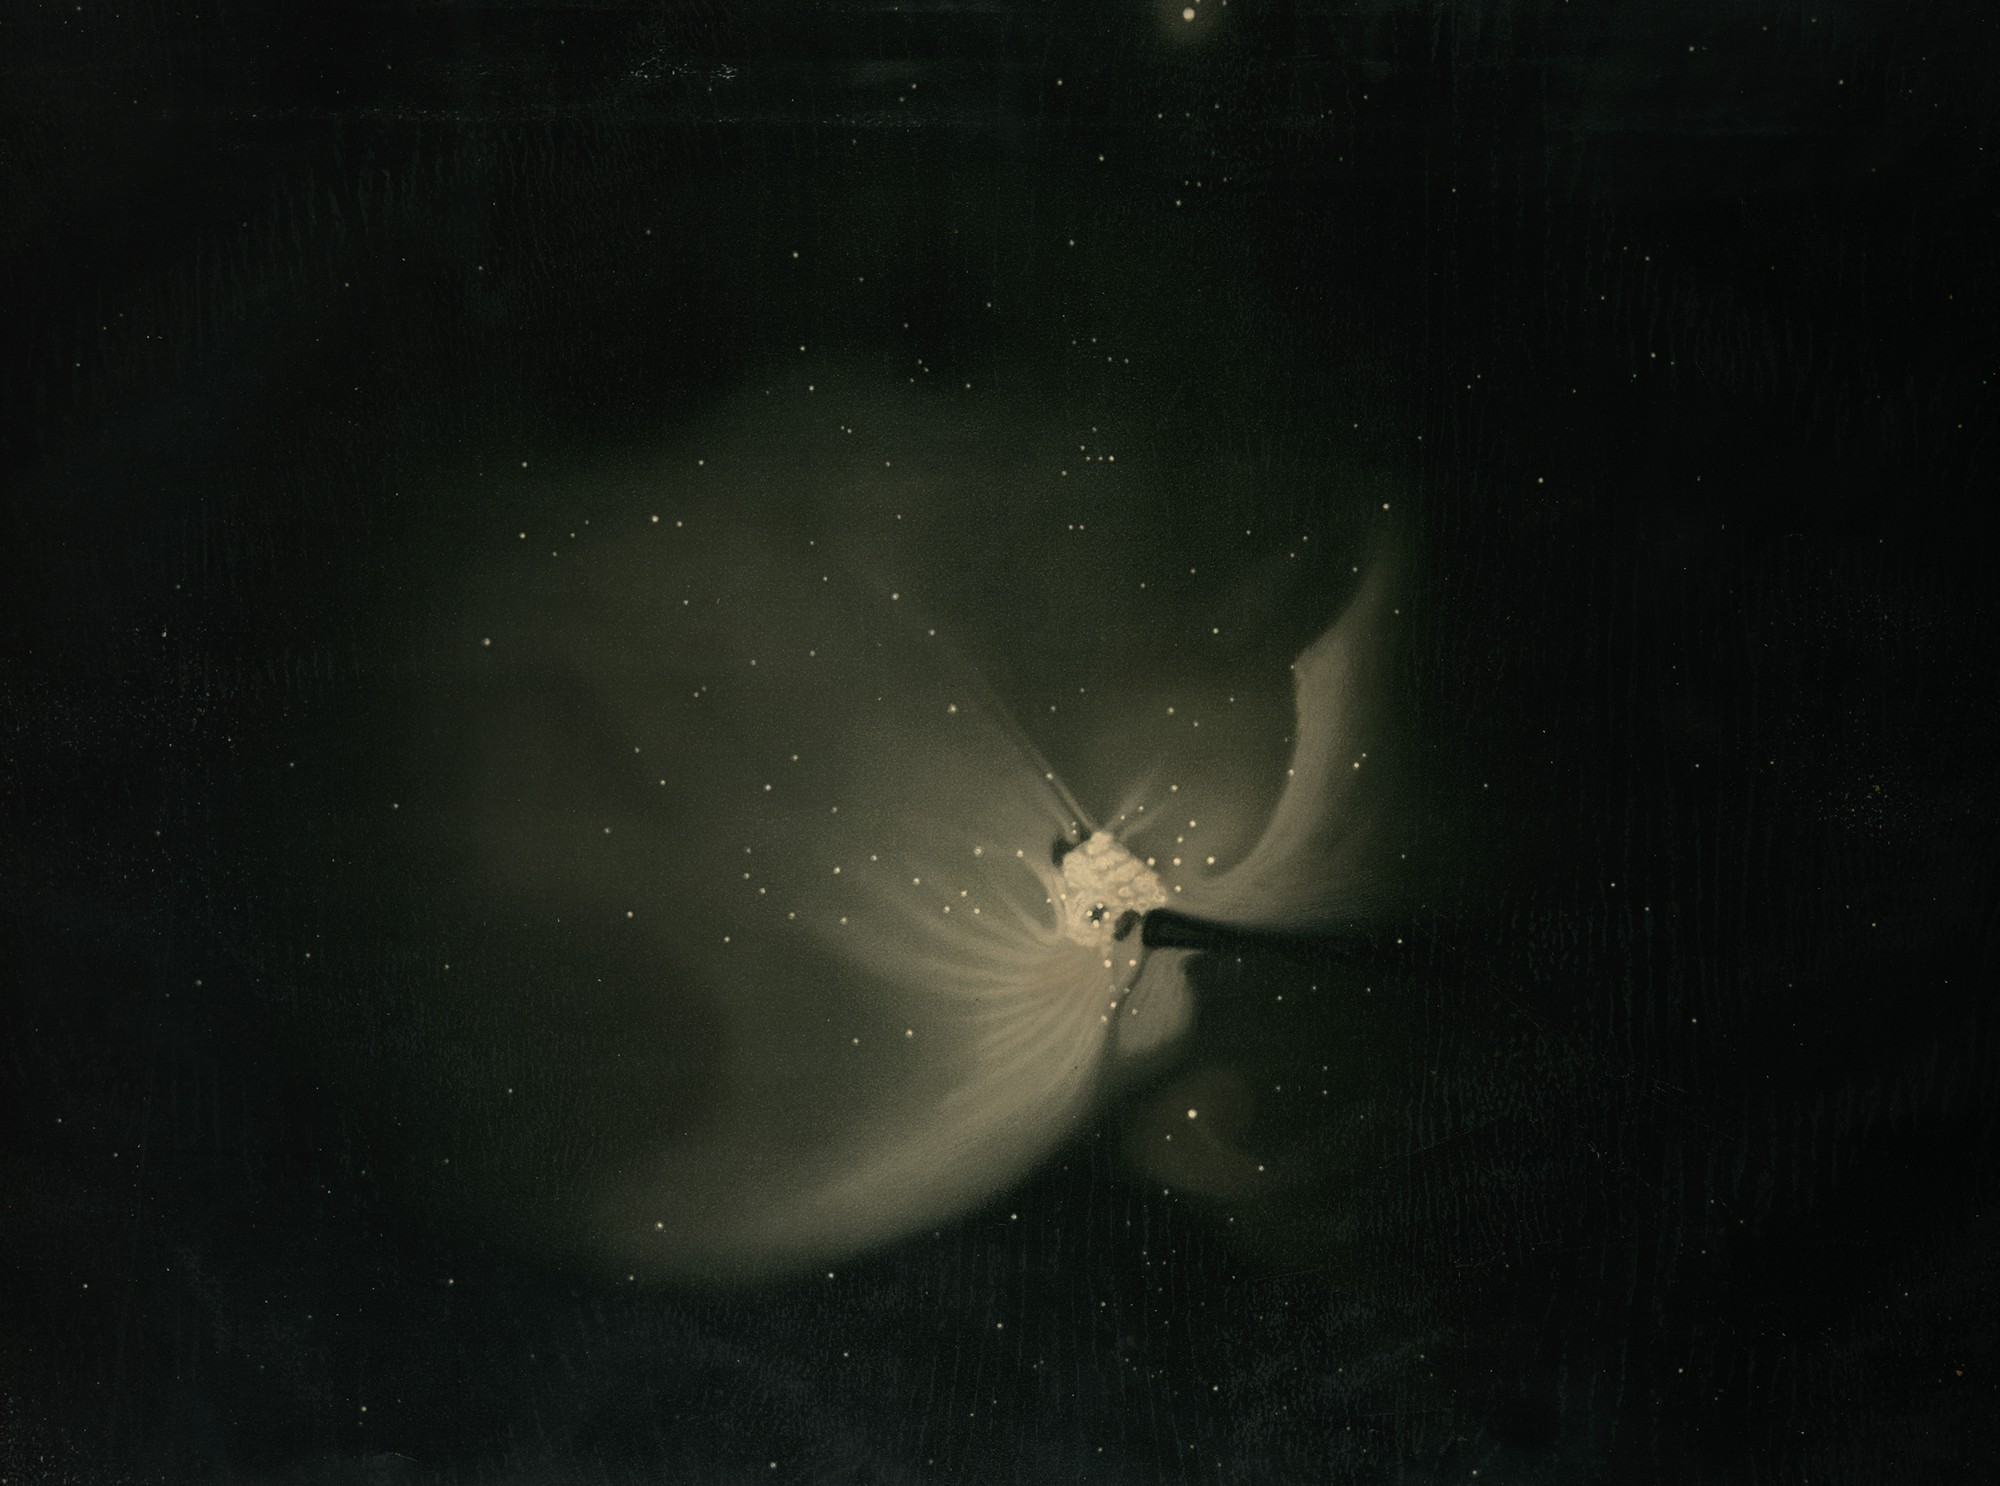 Great Nebula in Orion by E.Trouvelot, 1875-1876